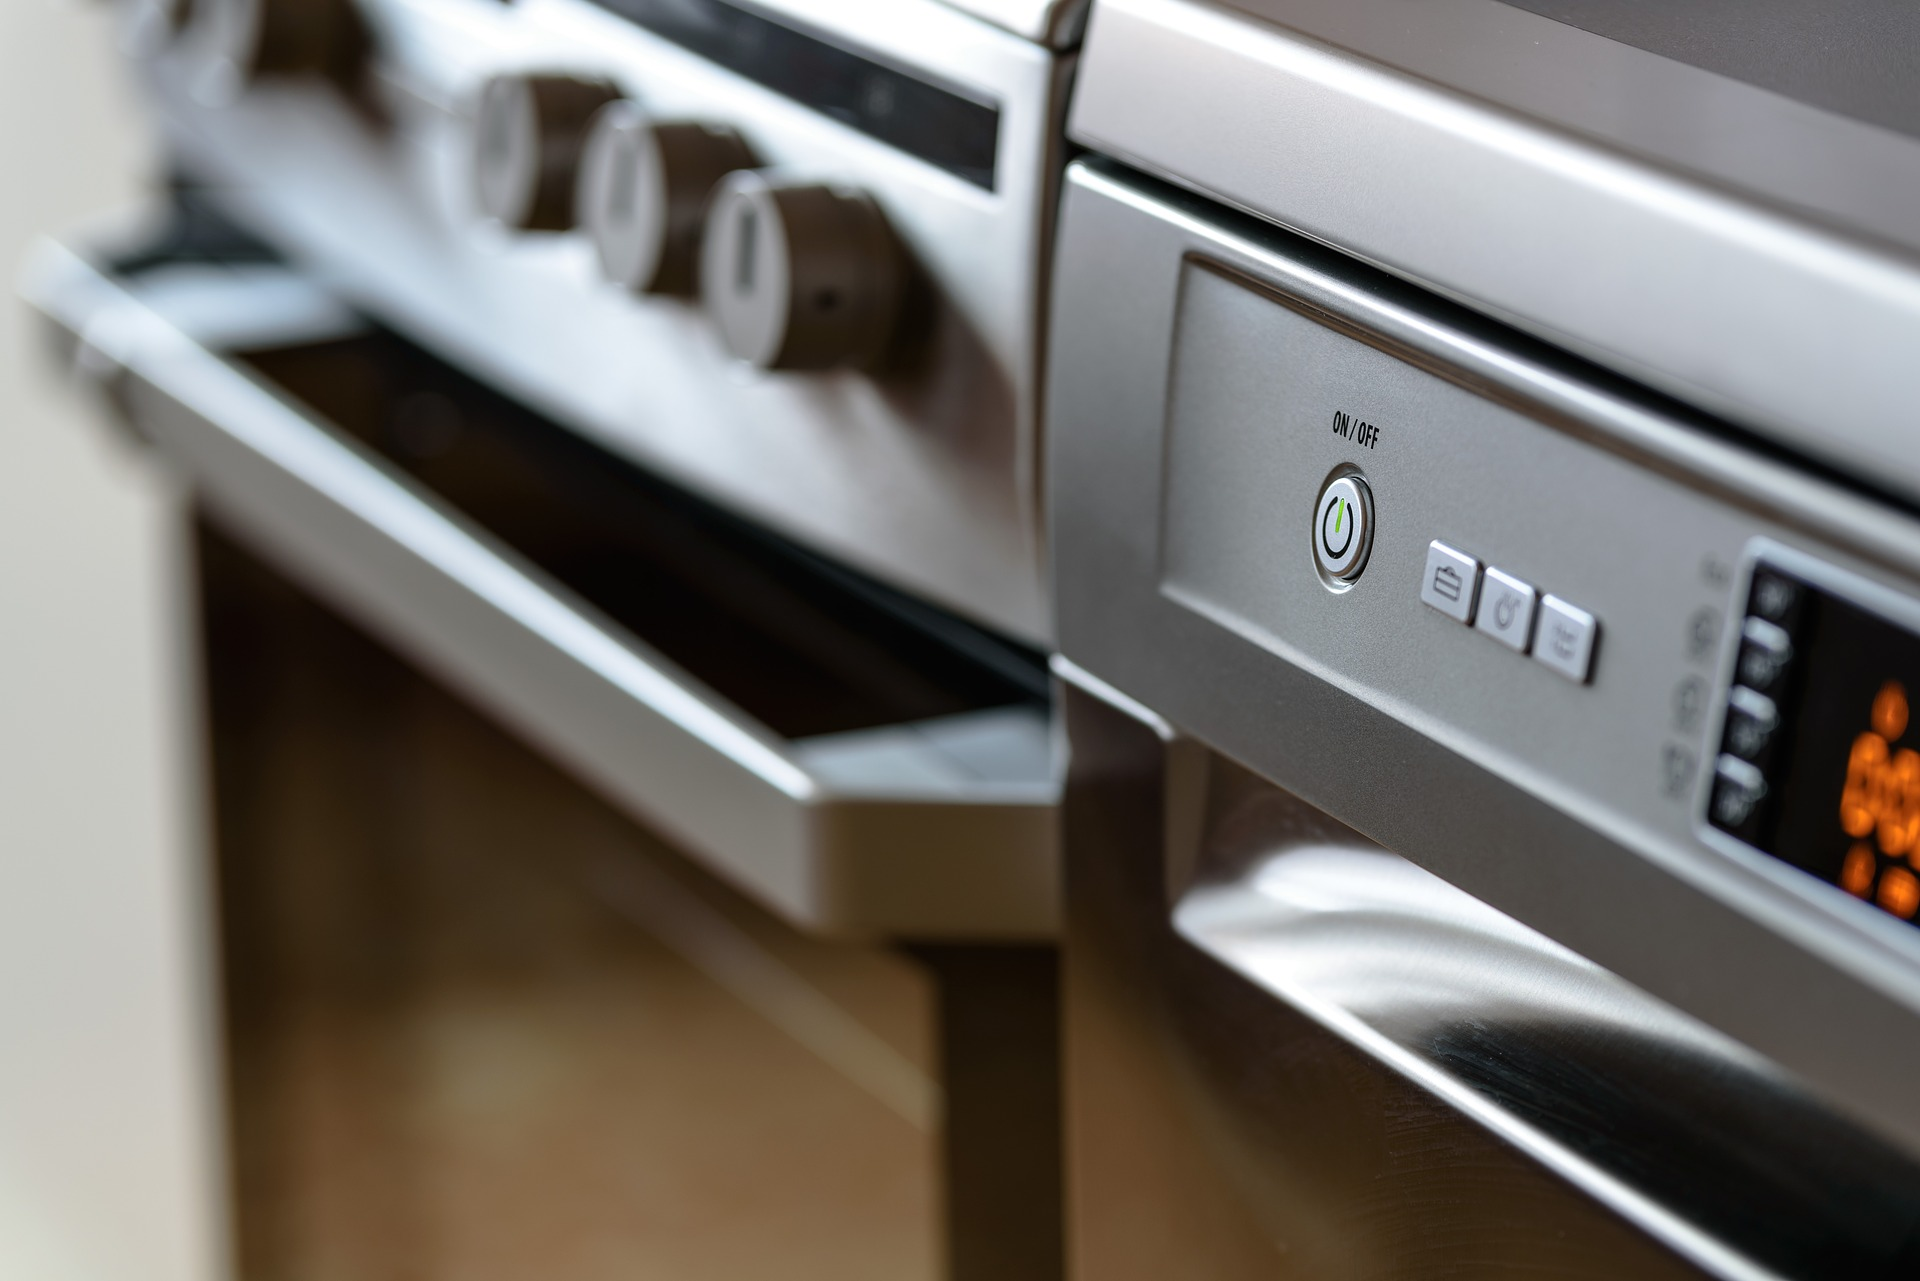 How Long Will Your Home Appliances Last?